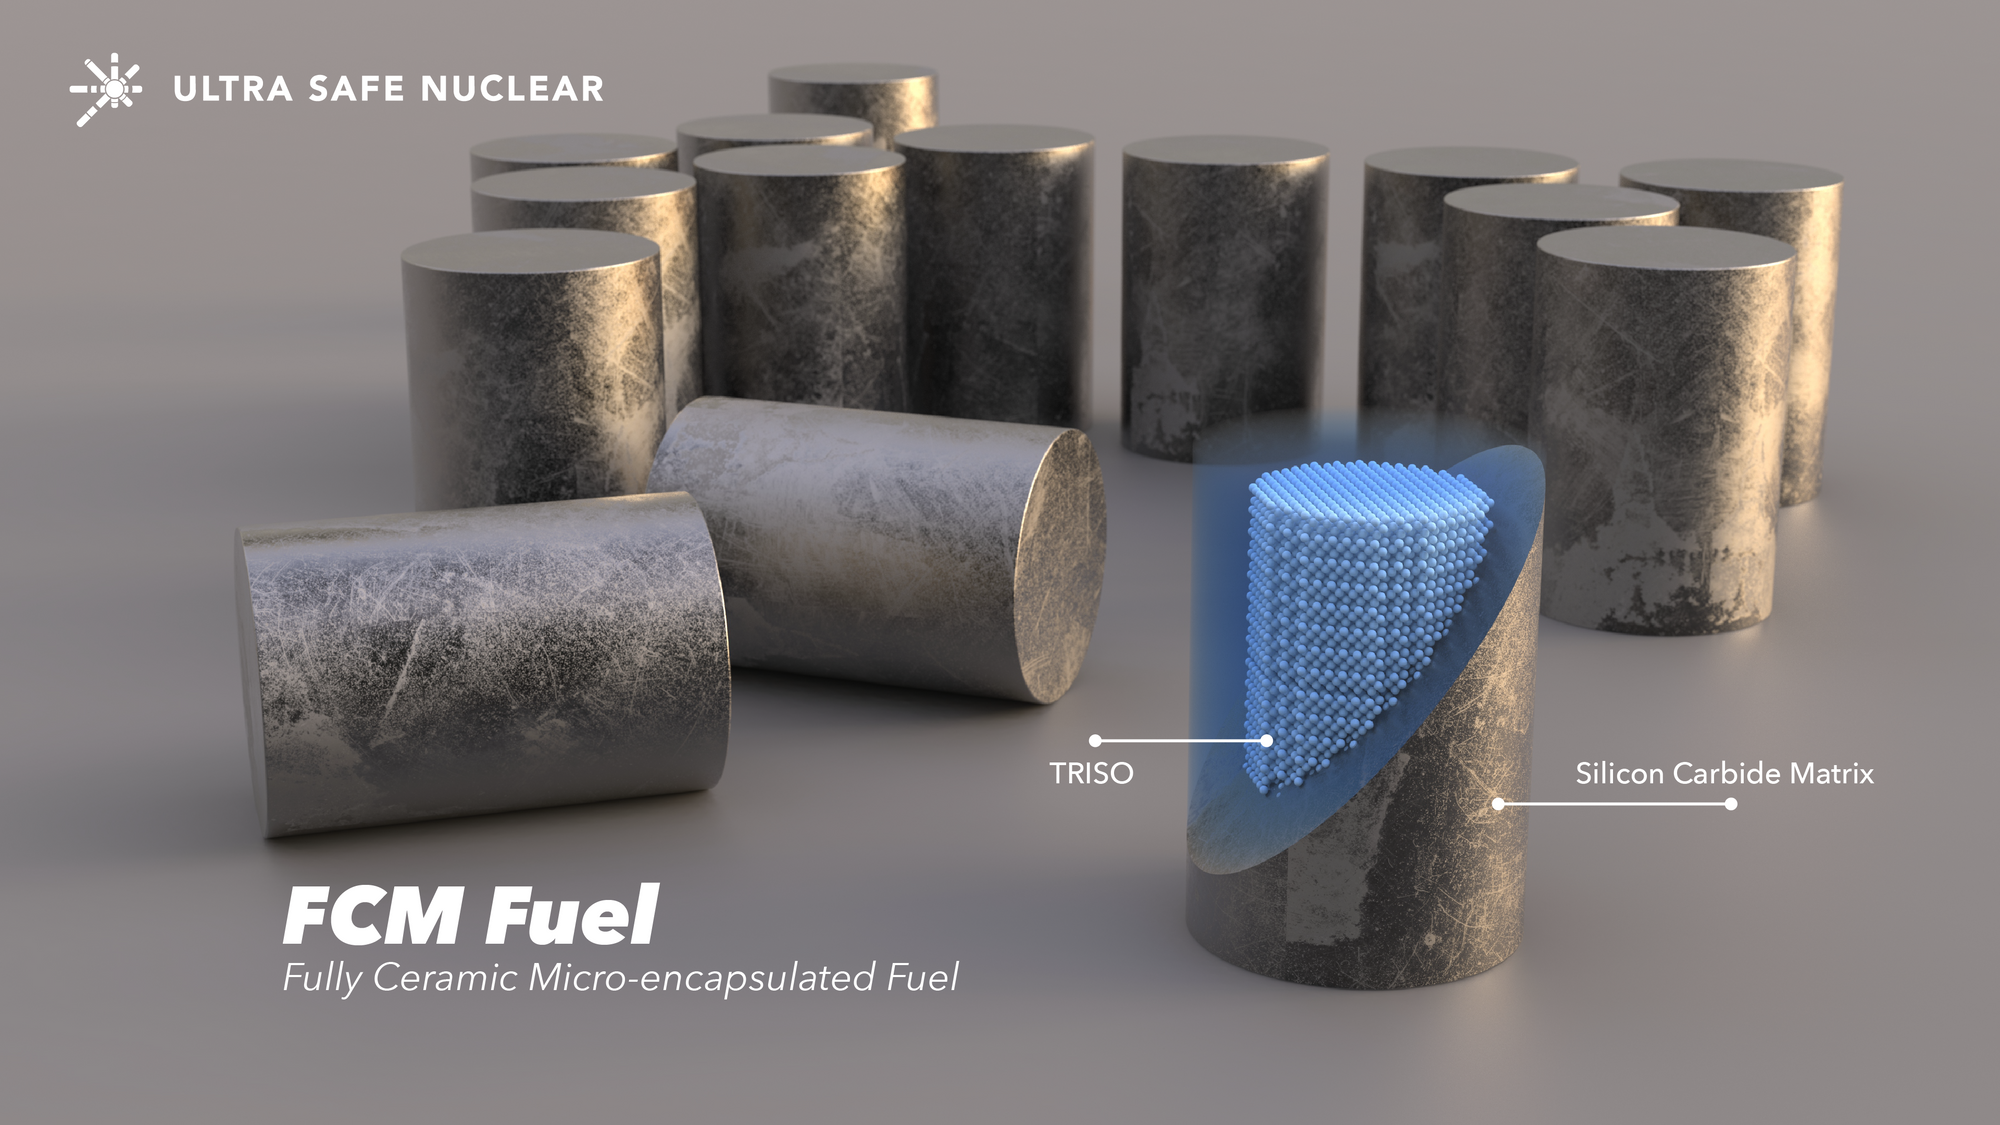 Ultra Safe Nuclear Opens Salt Lake City Facility to Support Development of Fully Ceramic Micro-encapsulated Fuel